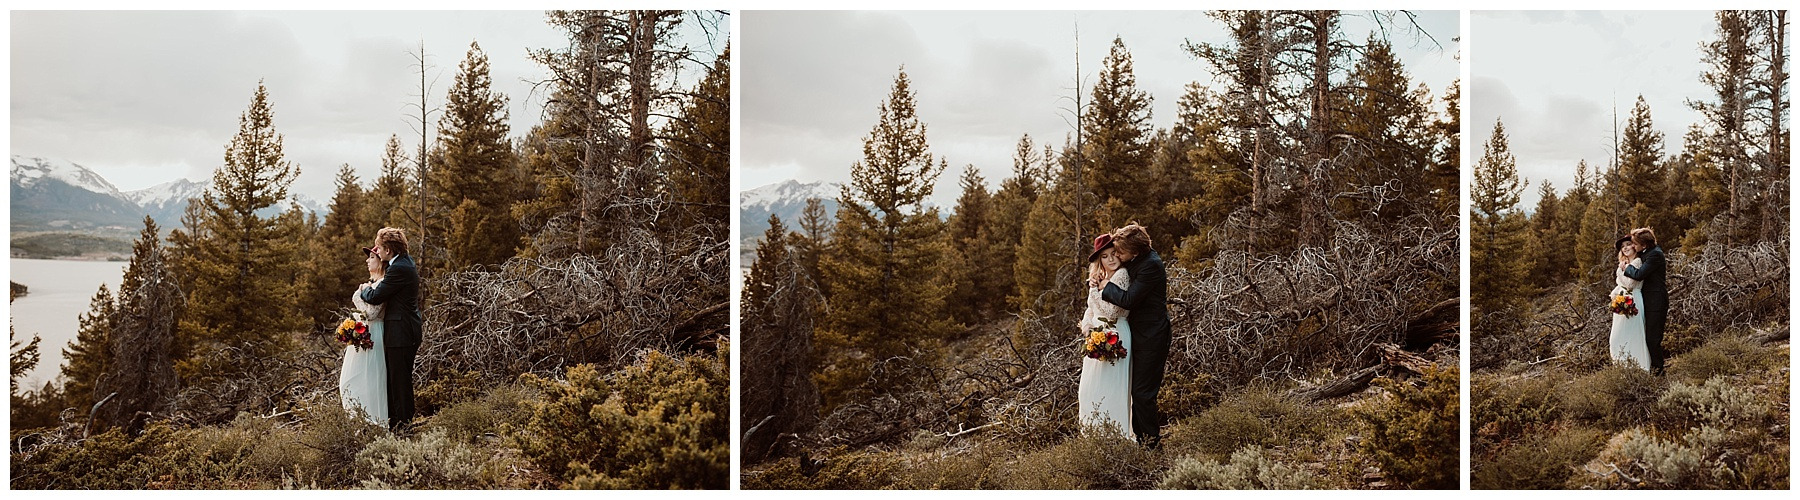 ColoradoWeddingMountainElopement35.jpg